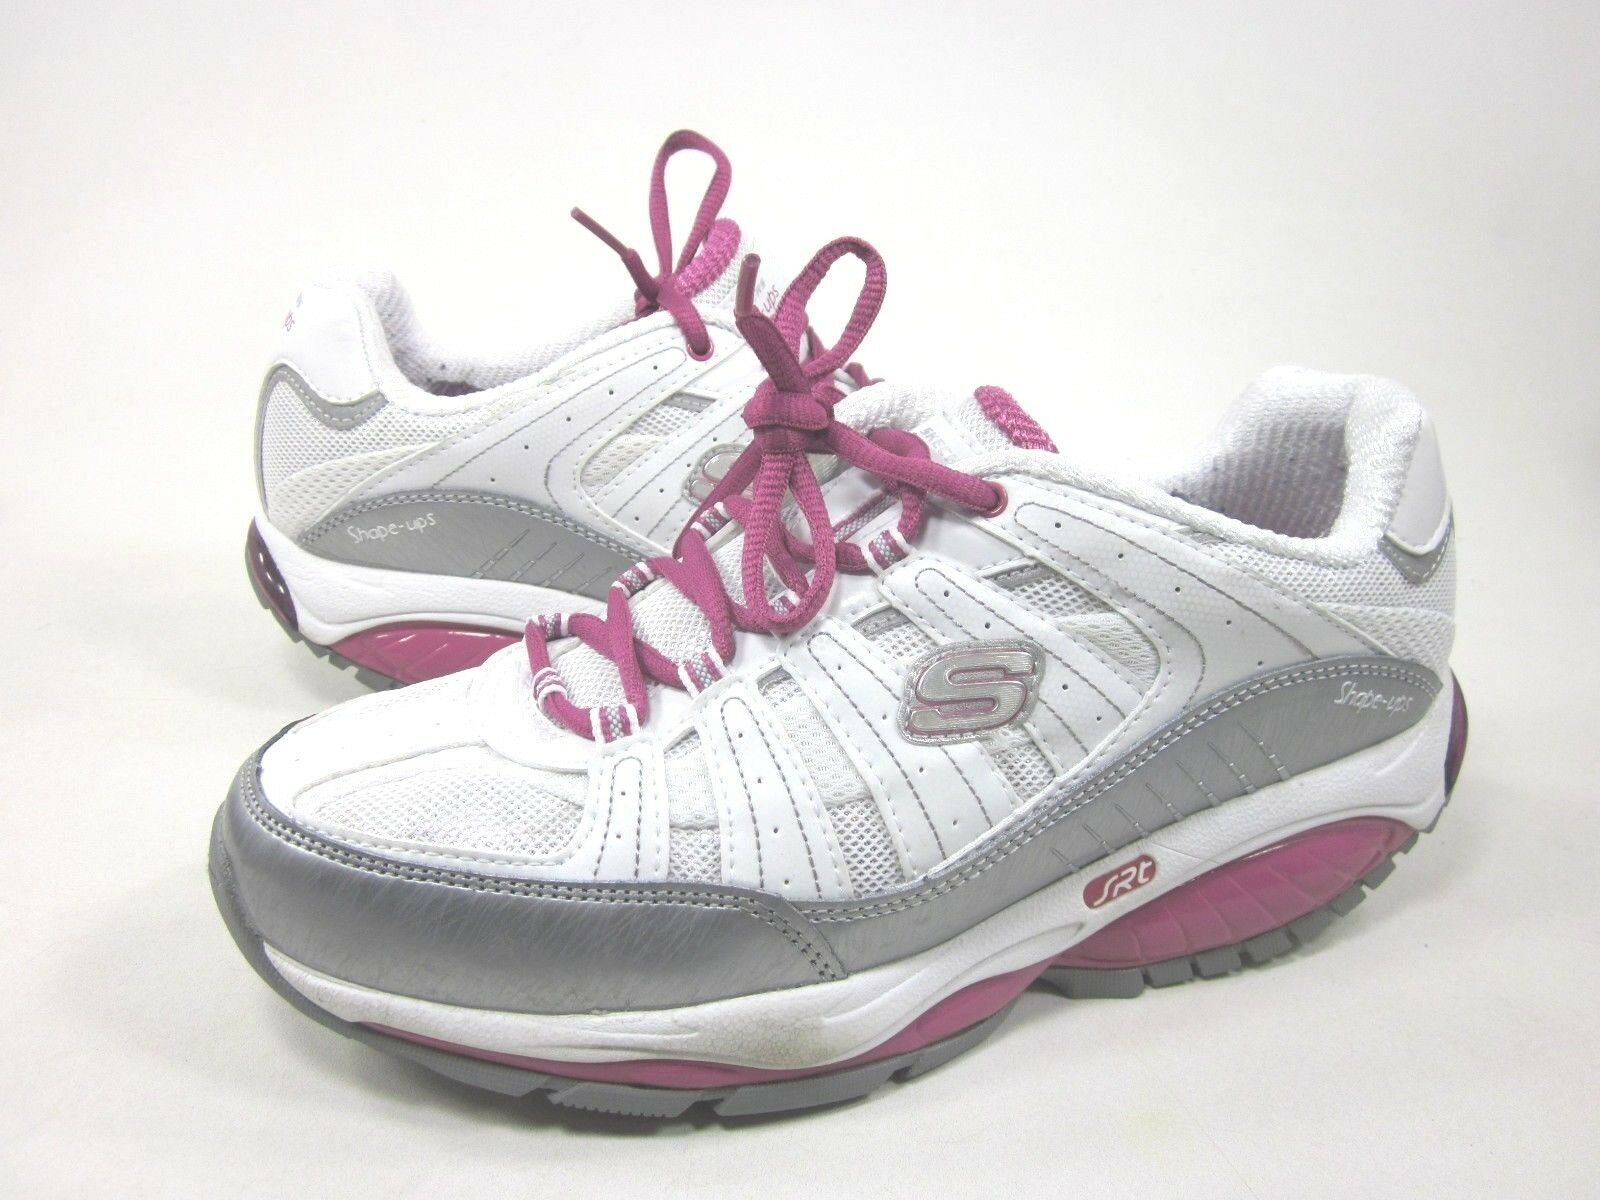 SKECHERS WOMEN'S SHAPE UPS KINETIX RESPONSE WALKING SHOES,WHITE/PINK,US SIZE 8.5 Special limited time